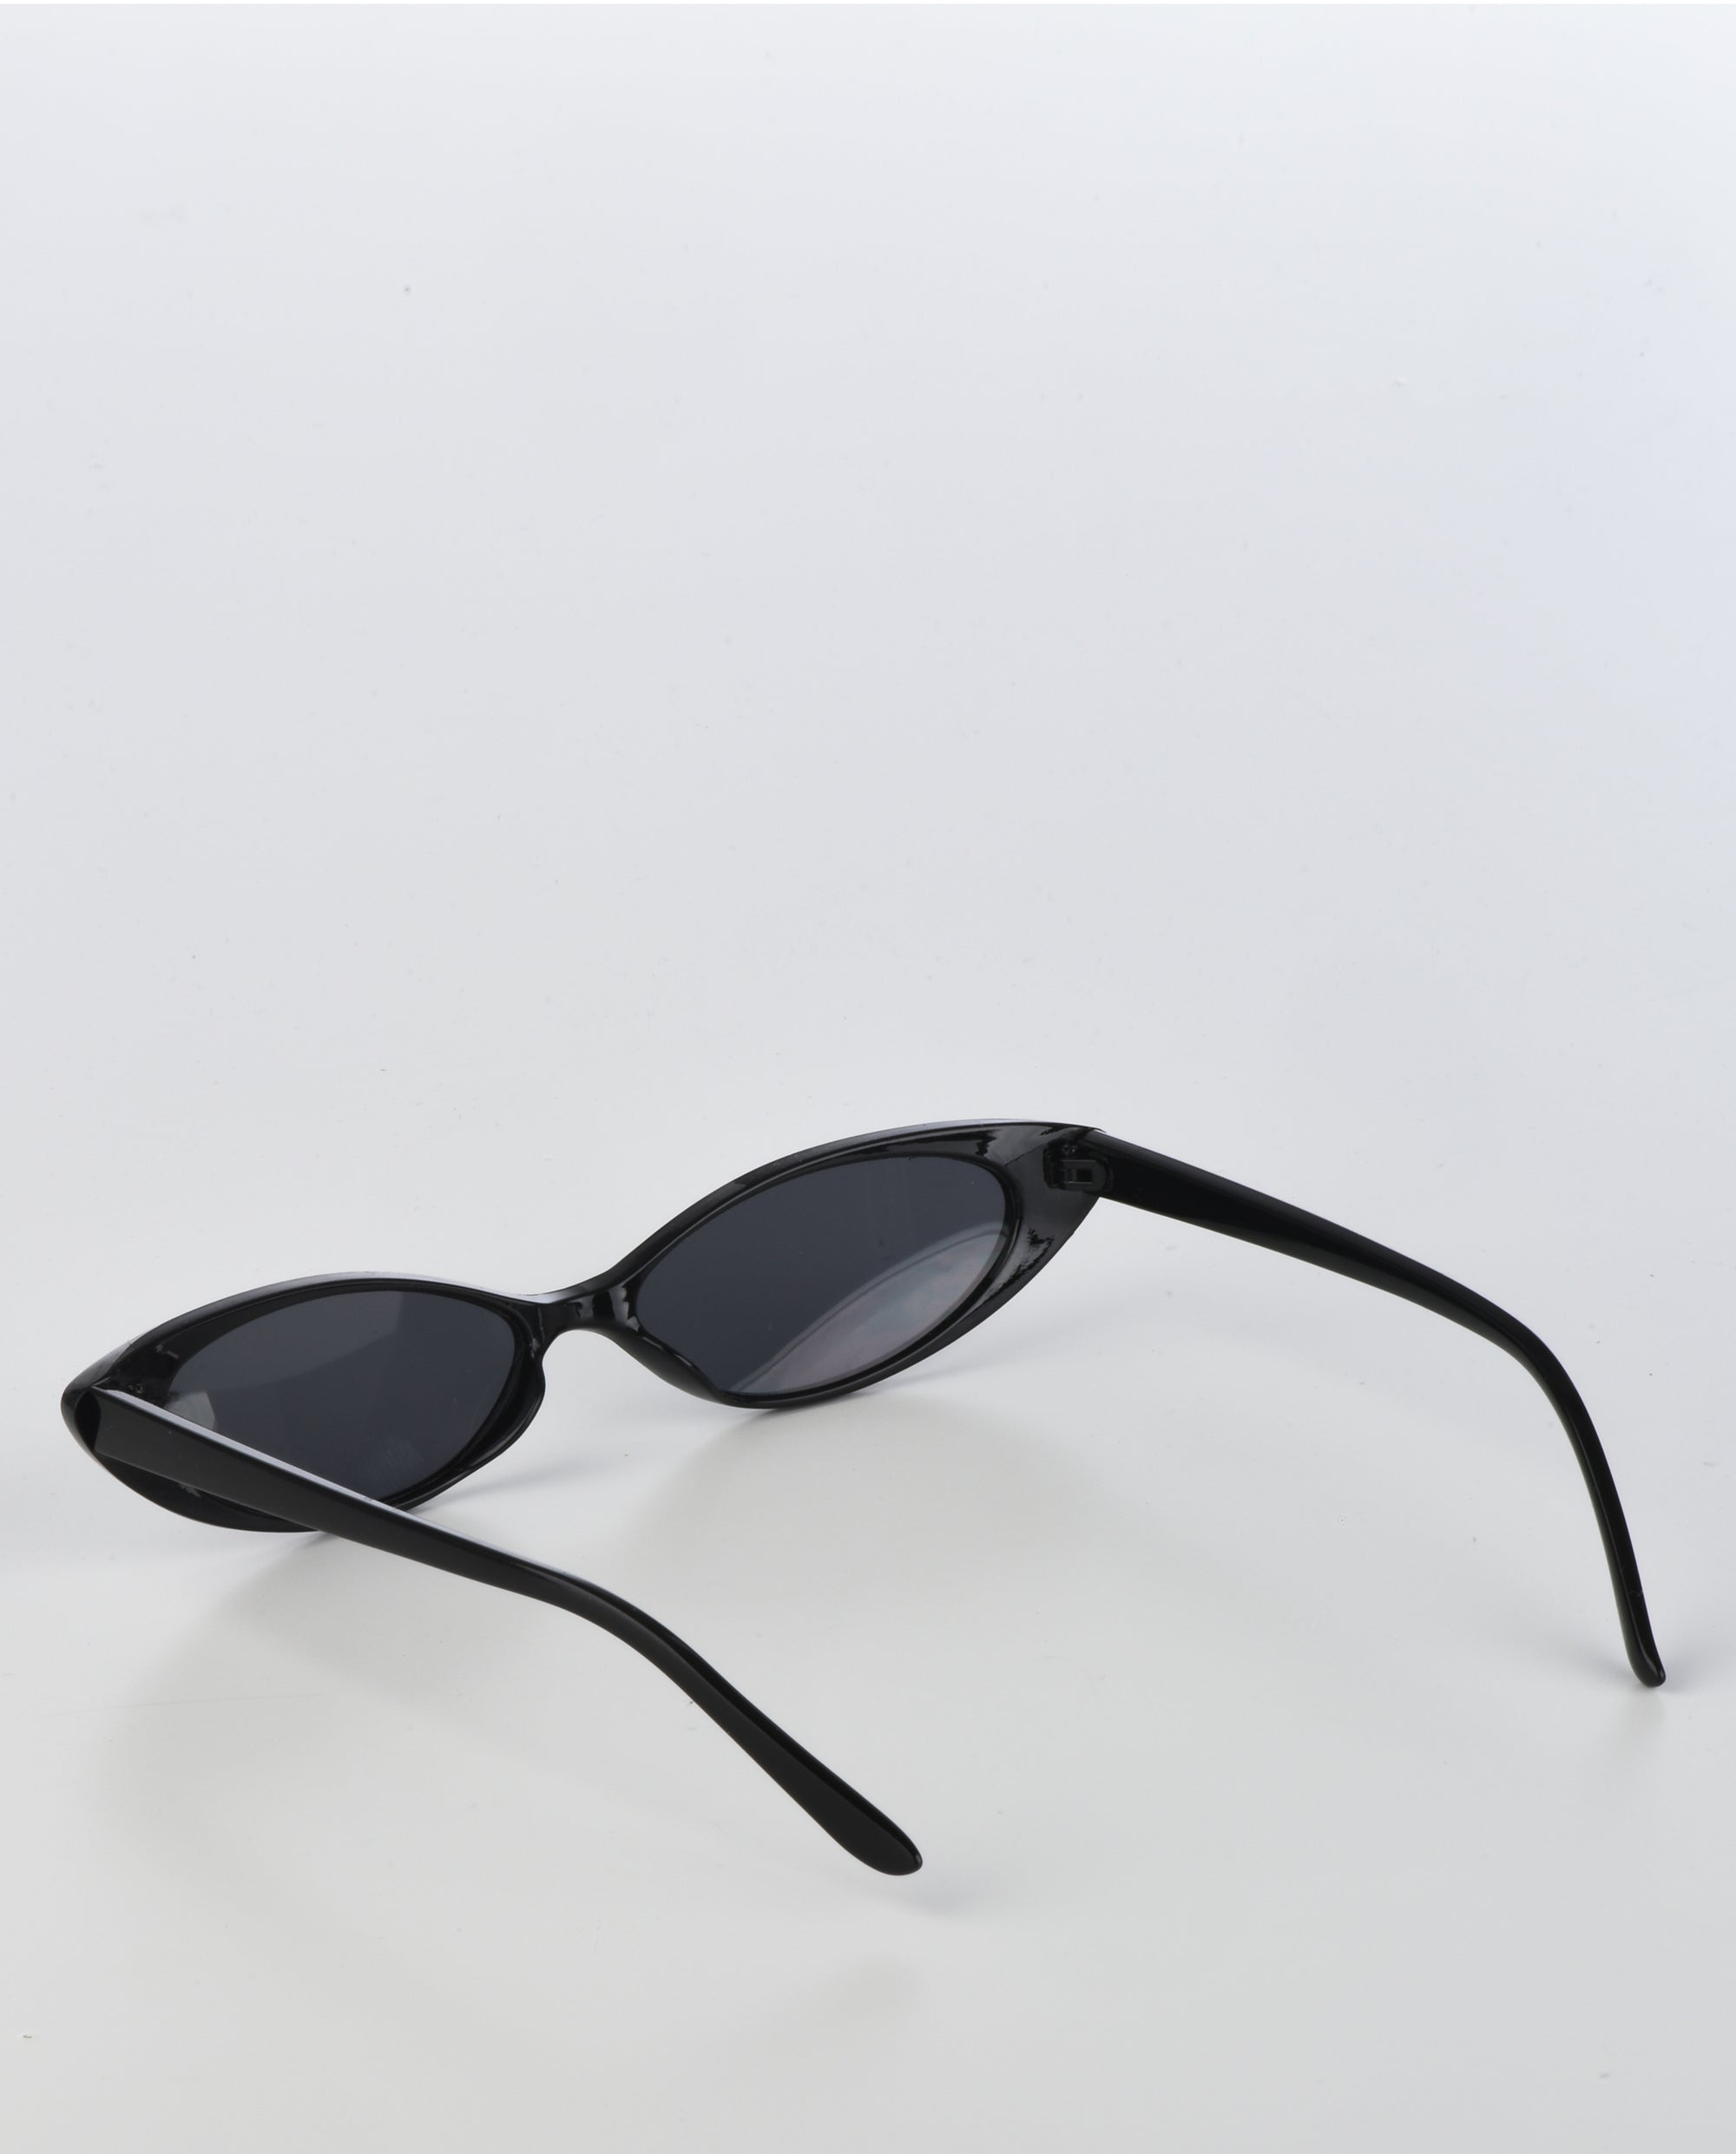 799f7583e6 Small Pointy Cat Eye Sunglasses - Fashion You Up